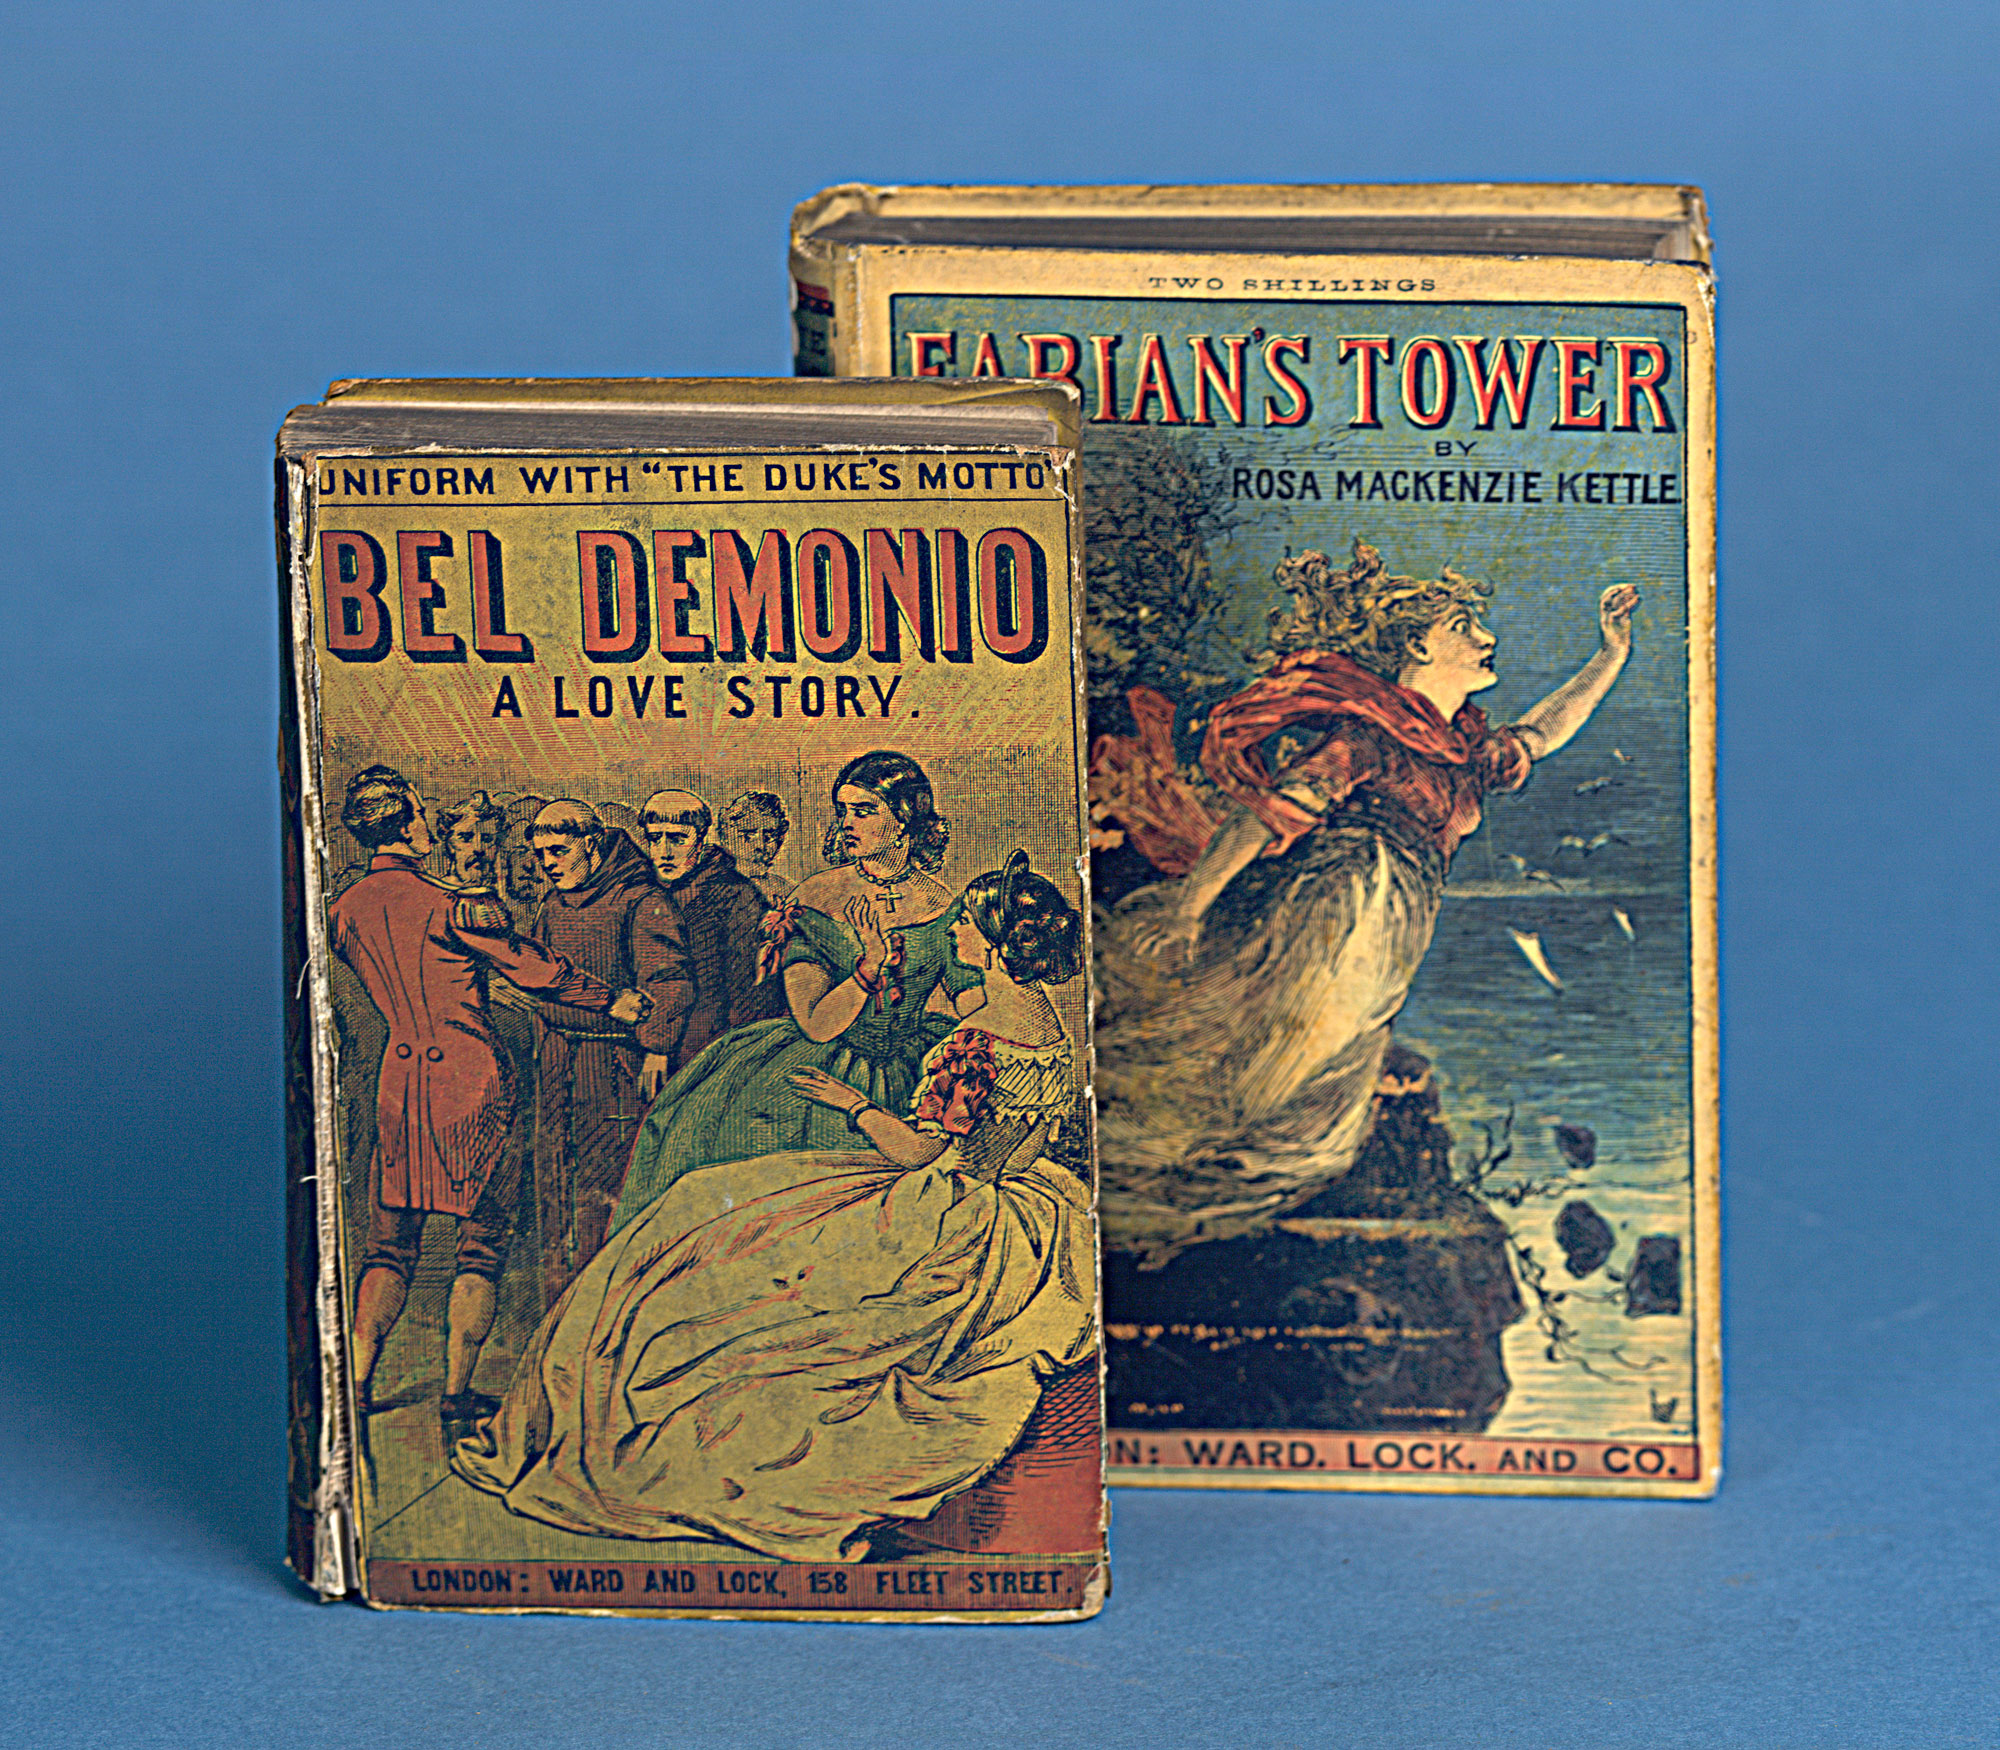 Bel Demonio  and Fabian's Tower [page: front cover]